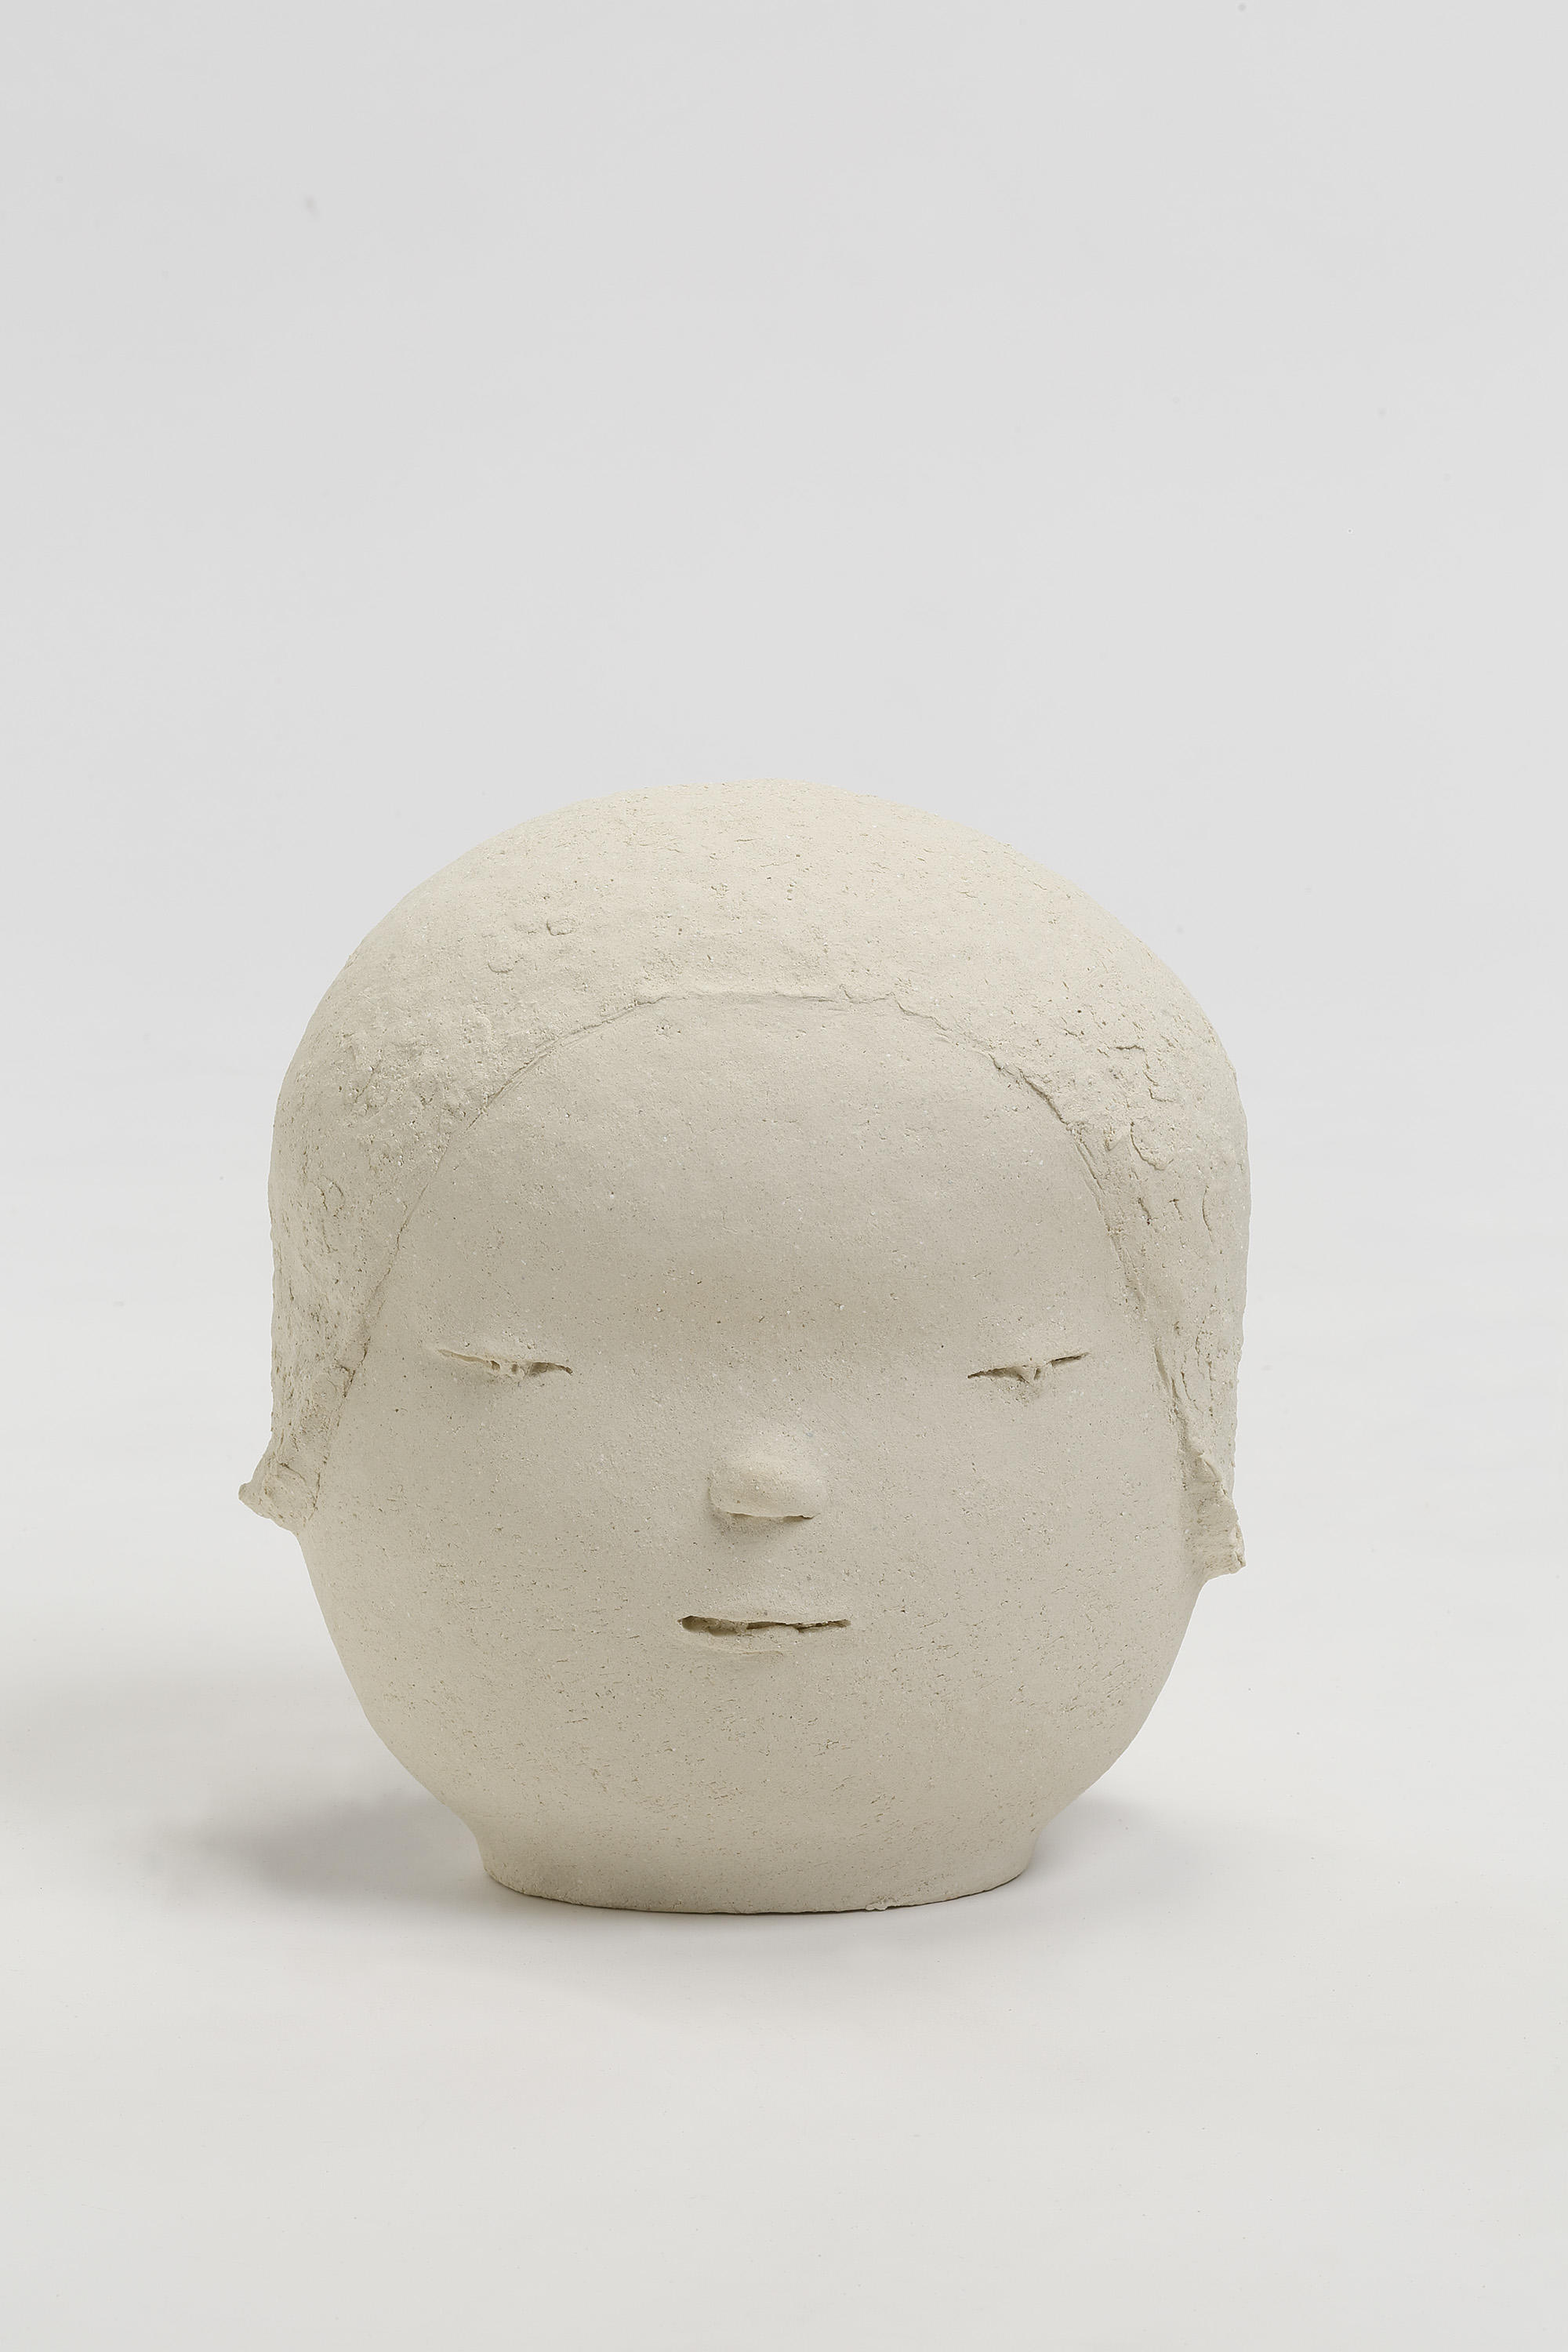 "Yoshitomo Nara, Head 1, 2018,  11-7/16"" x 10-5/8"" x 8-7/16"" (29.1 cm x 27 cm x 21.4 cm),  SCULPTURE,  No. 68819, view 1,  Alt # C-2018-022, Format of original photography: hi-res TIFF"